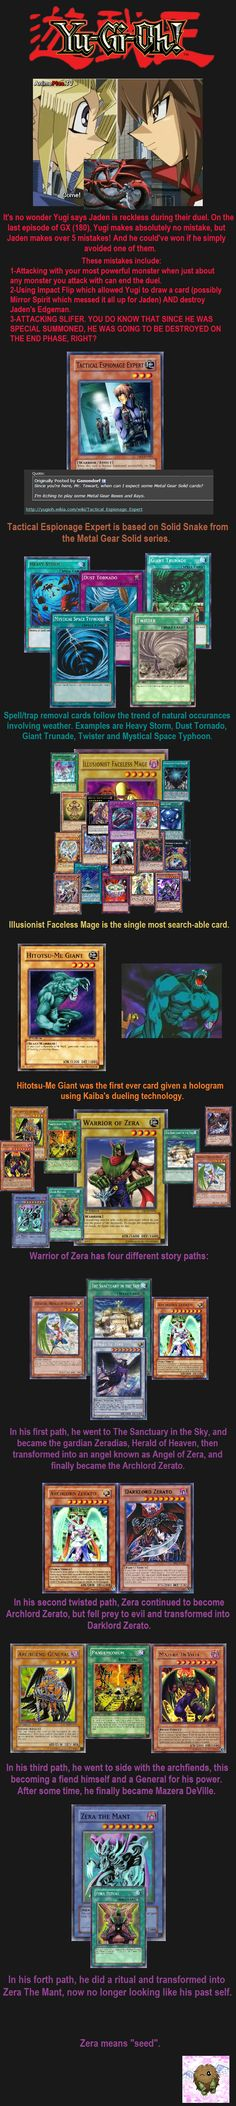 Yugioh Facts 9 // tags: funny pictures - funny photos - funny images - funny pics - funny quotes - #lol #humor #funnypictures